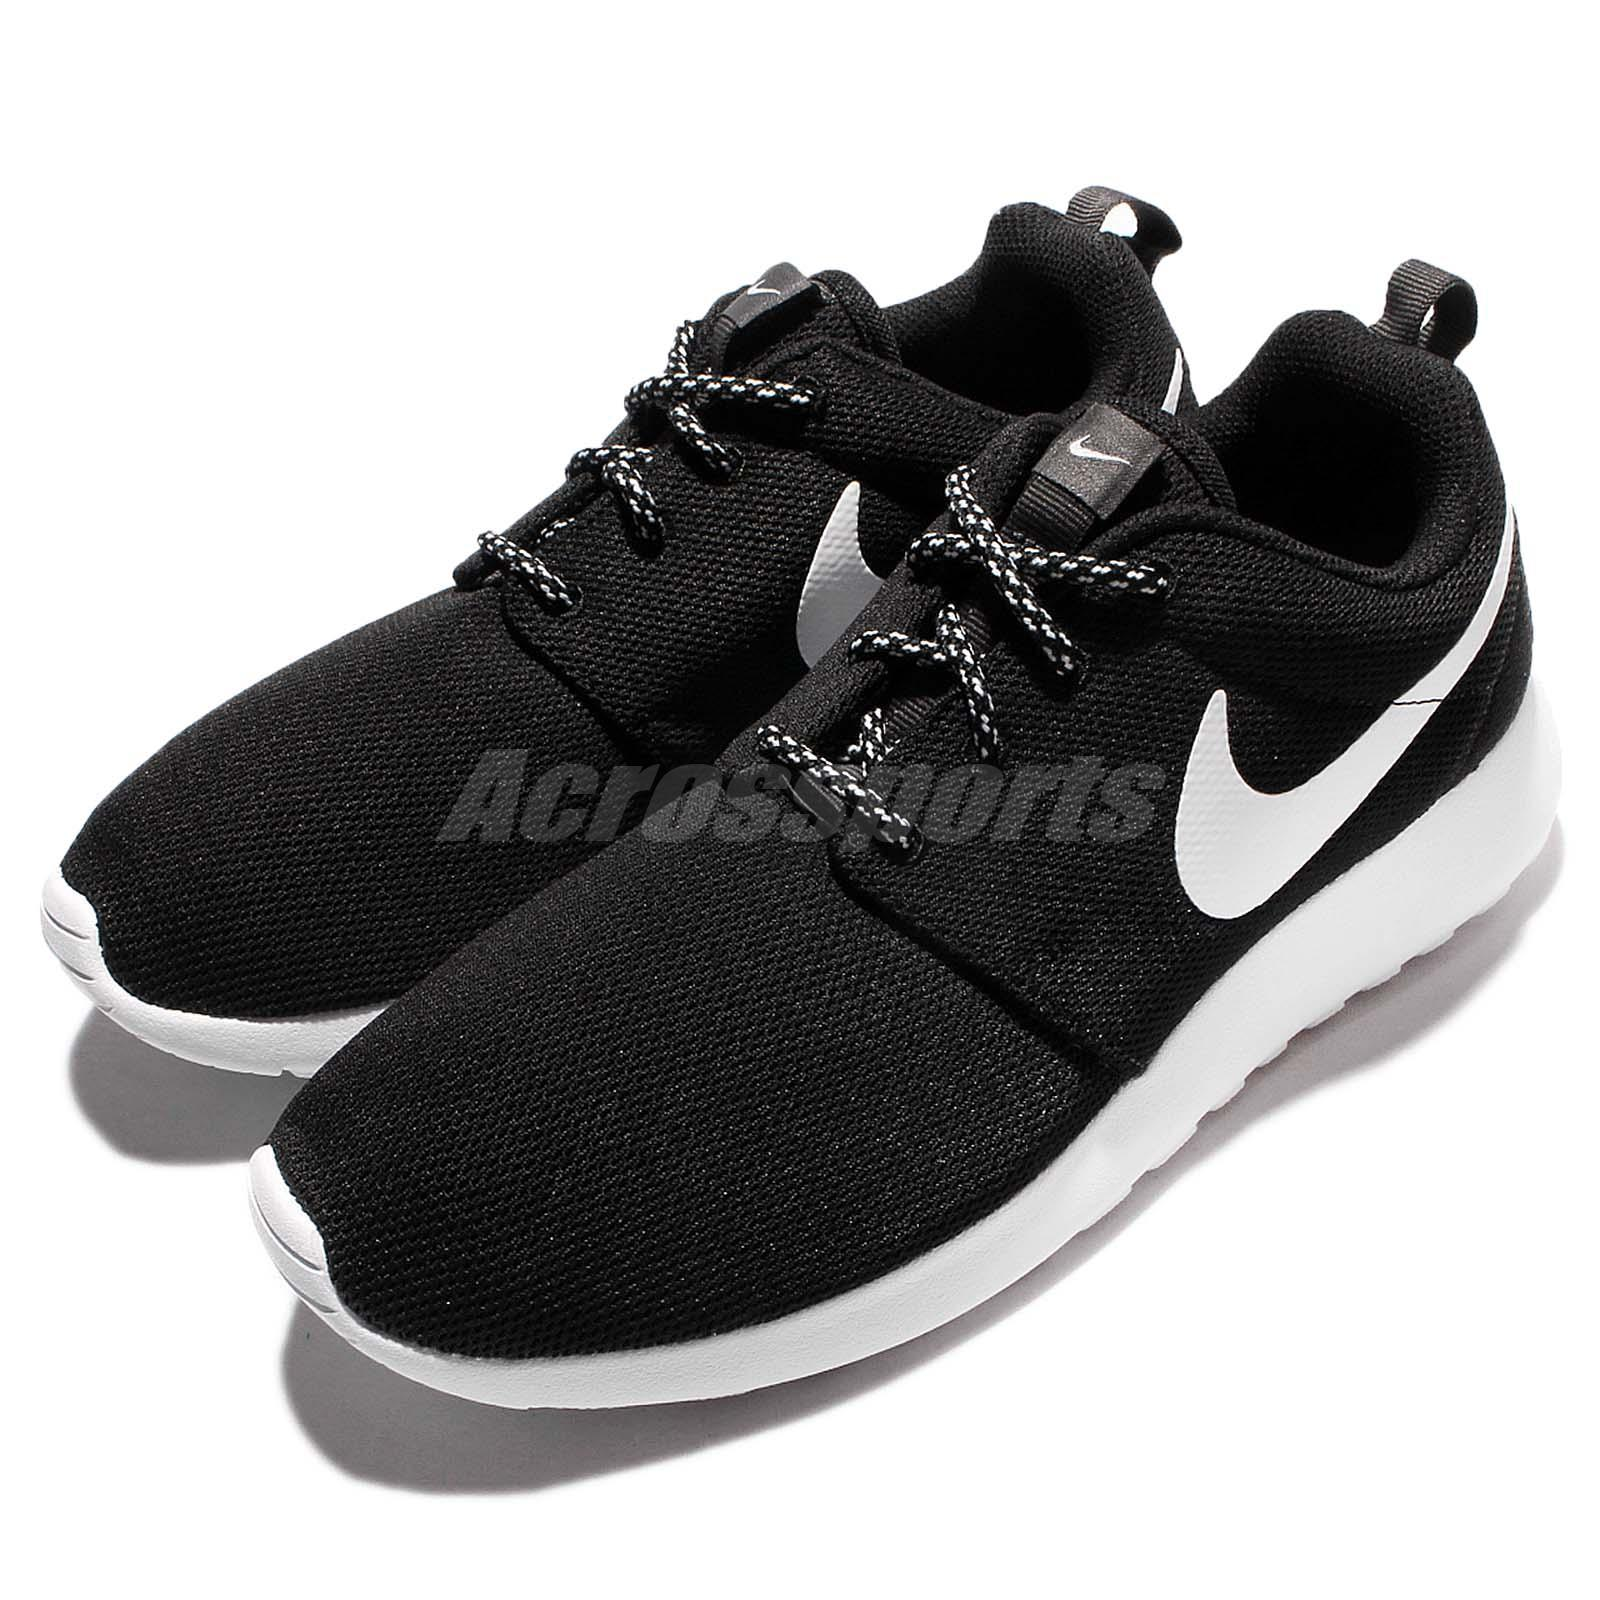 2ff0194f27ba Details about Wmns Nike Roshe One Black White Rosherun Women Running Shoes  Sneakers 844994-002